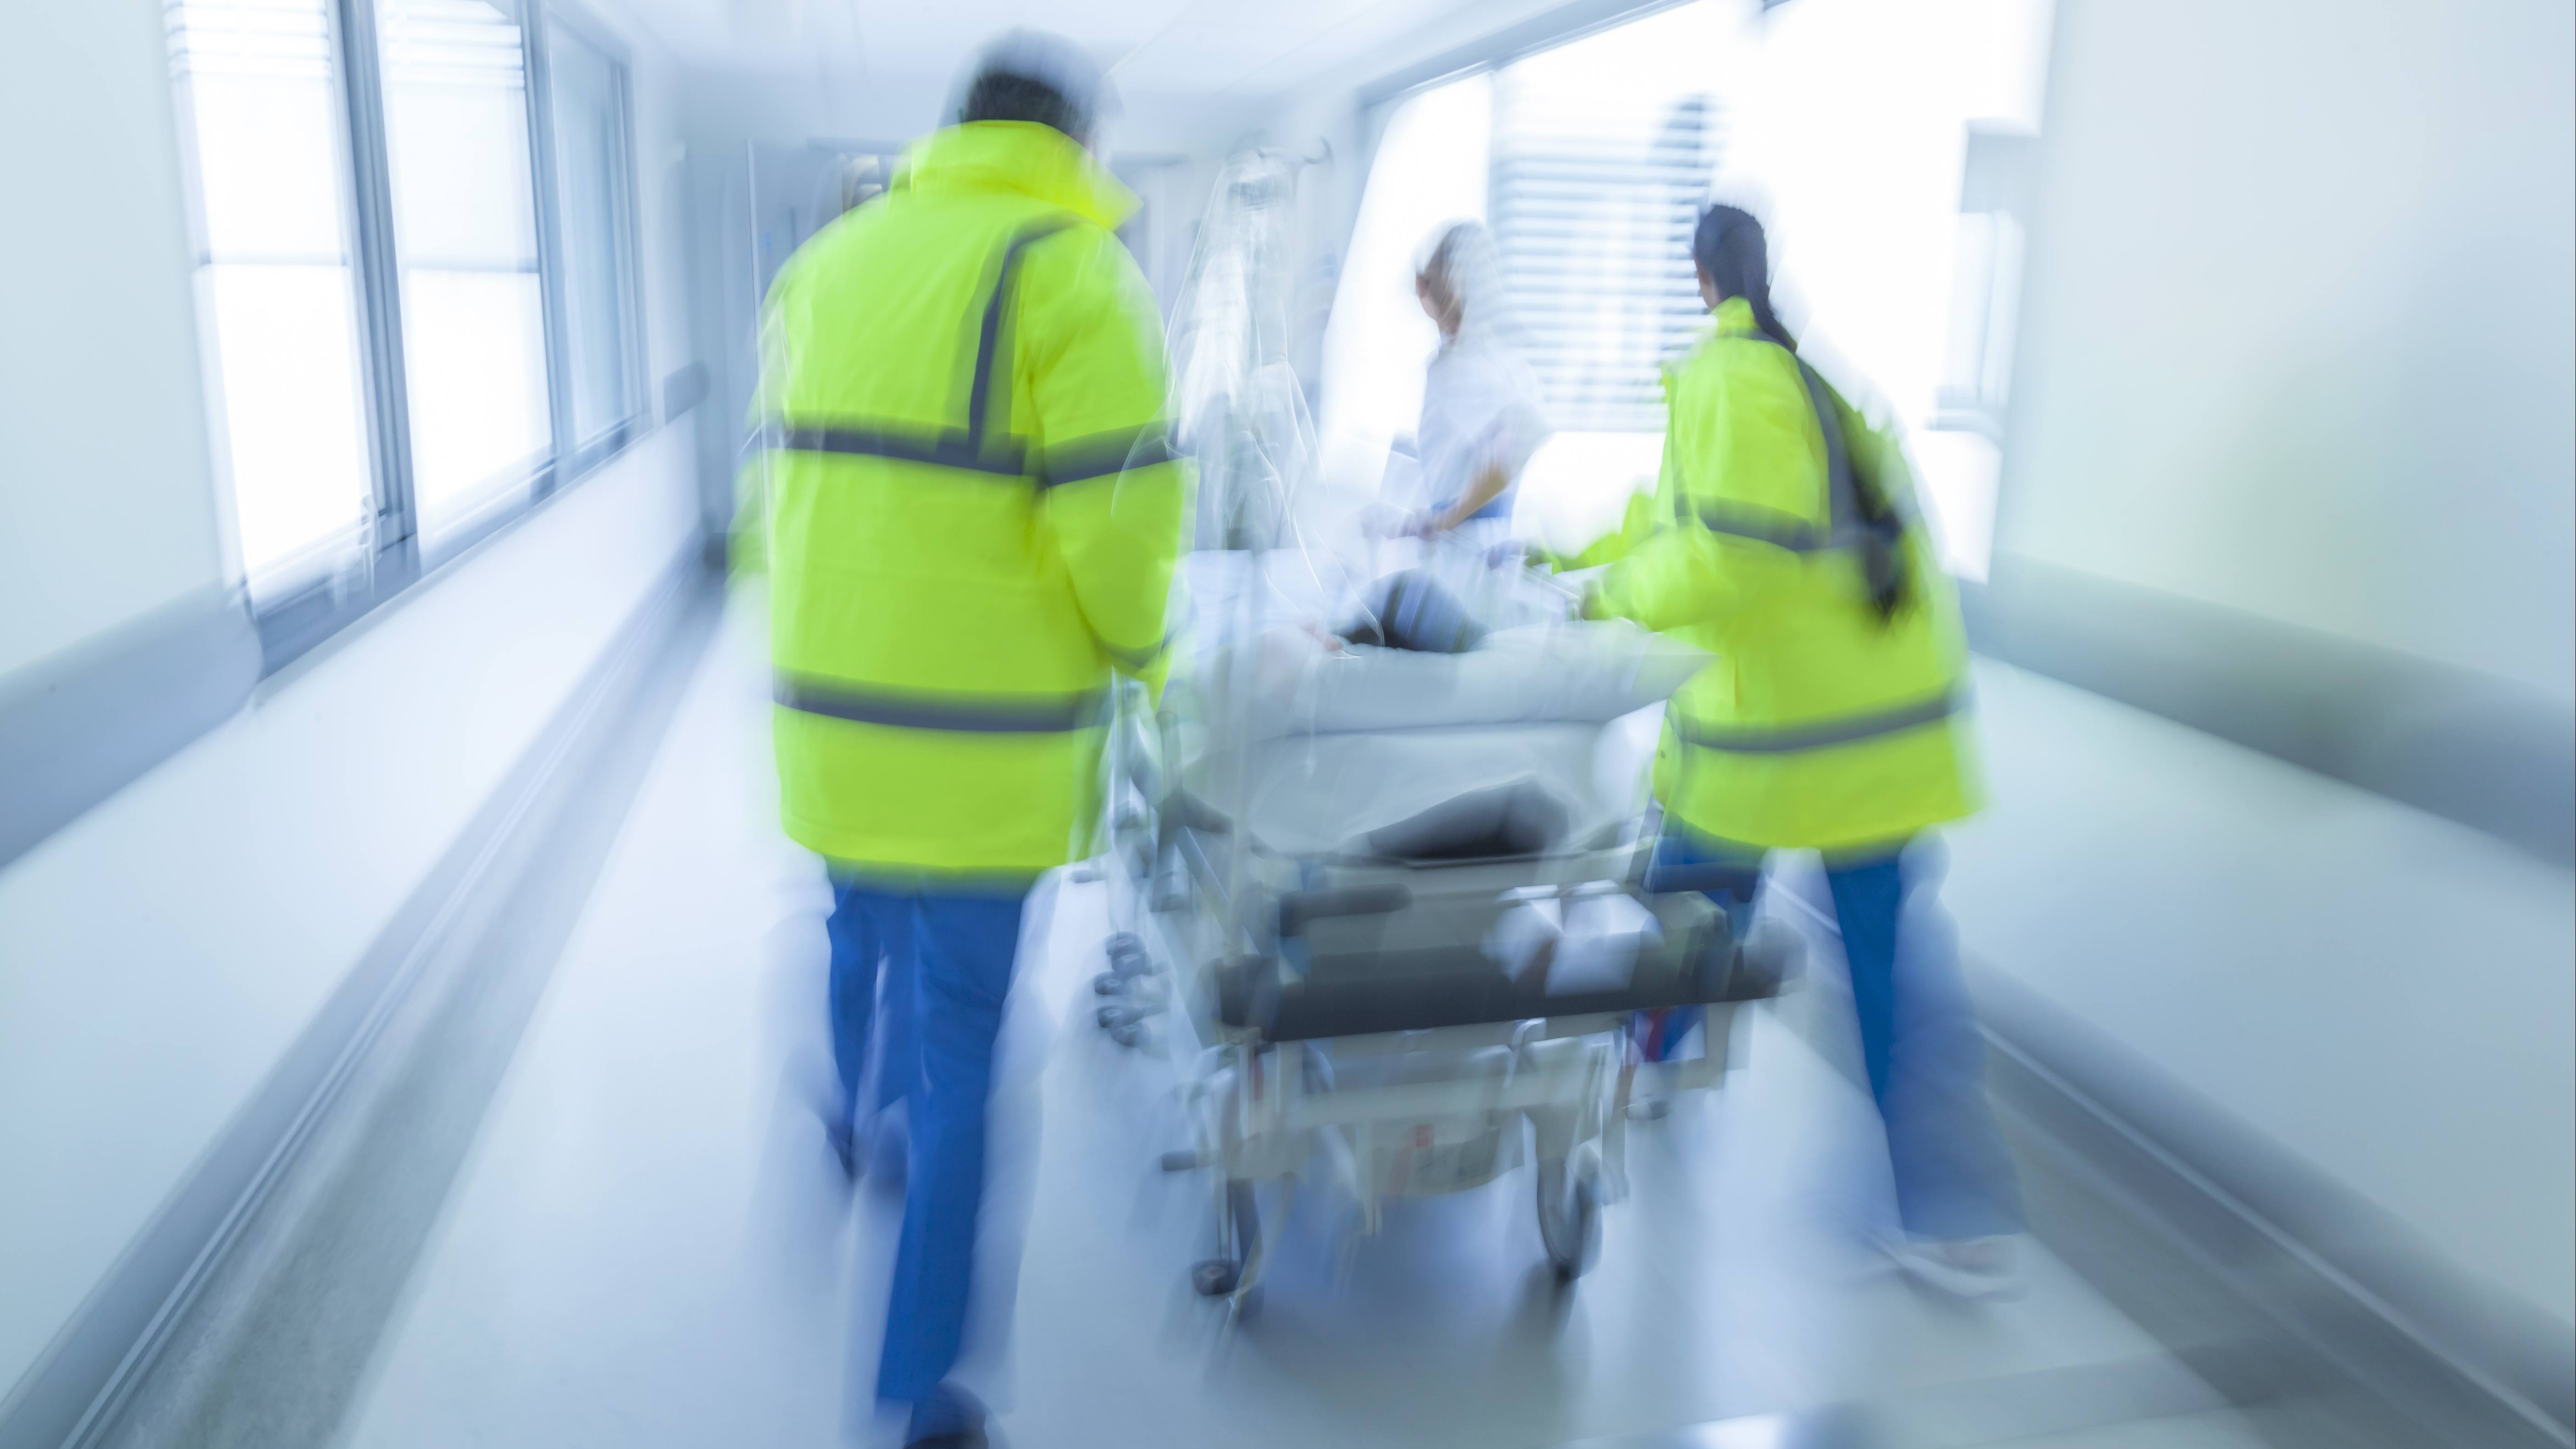 a slightly out of focus image of a hospital hallway with emergency staff walking quickly pushing a gurney with an injured patient